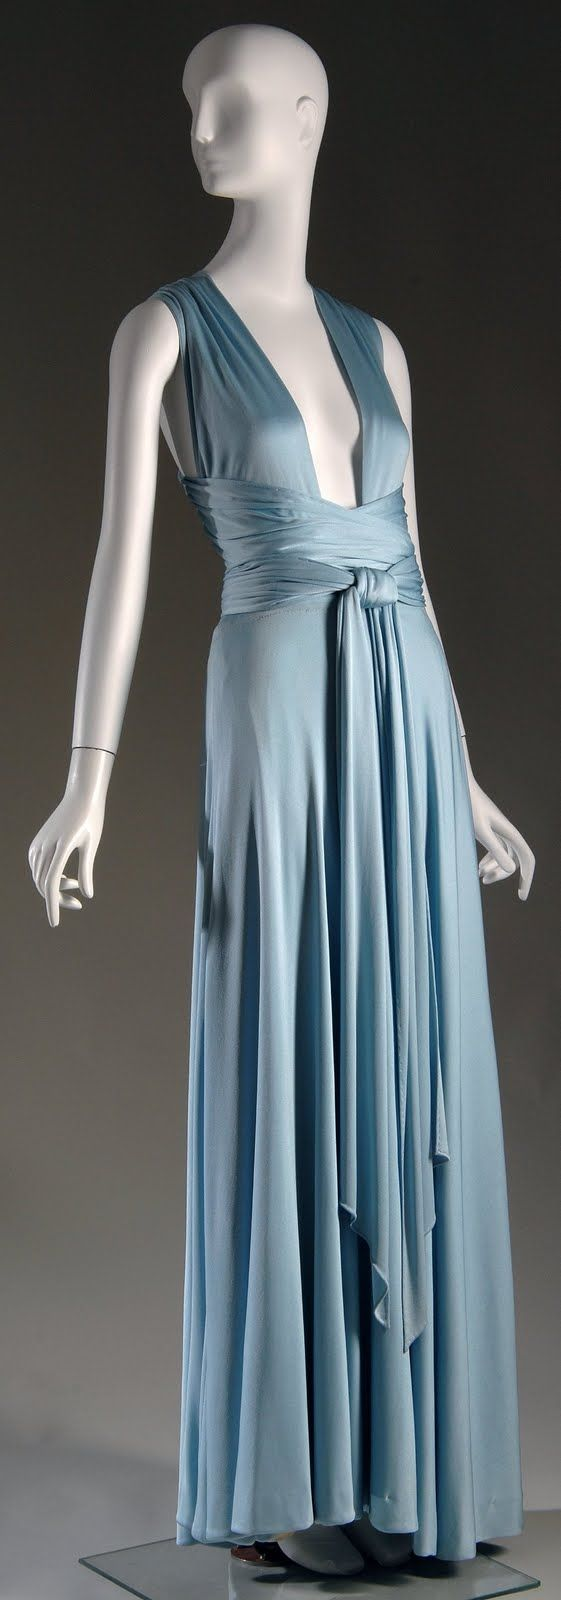 1000  ideas about Halston Vintage on Pinterest - Disco fashion ...